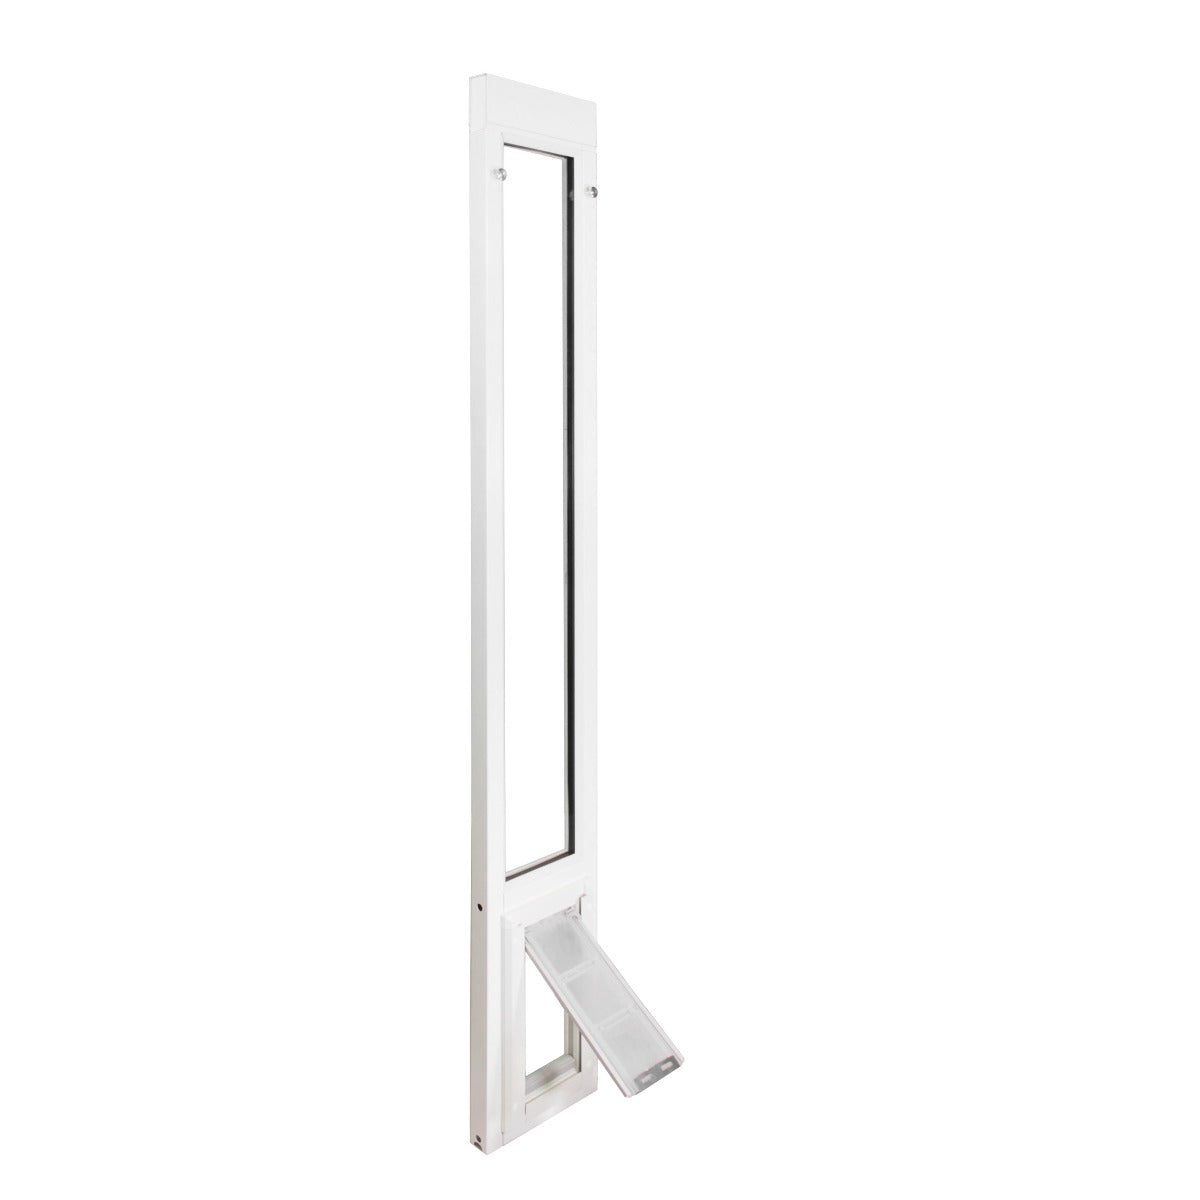 White vinyl frame sliding glass door insert panel from Endura Flap